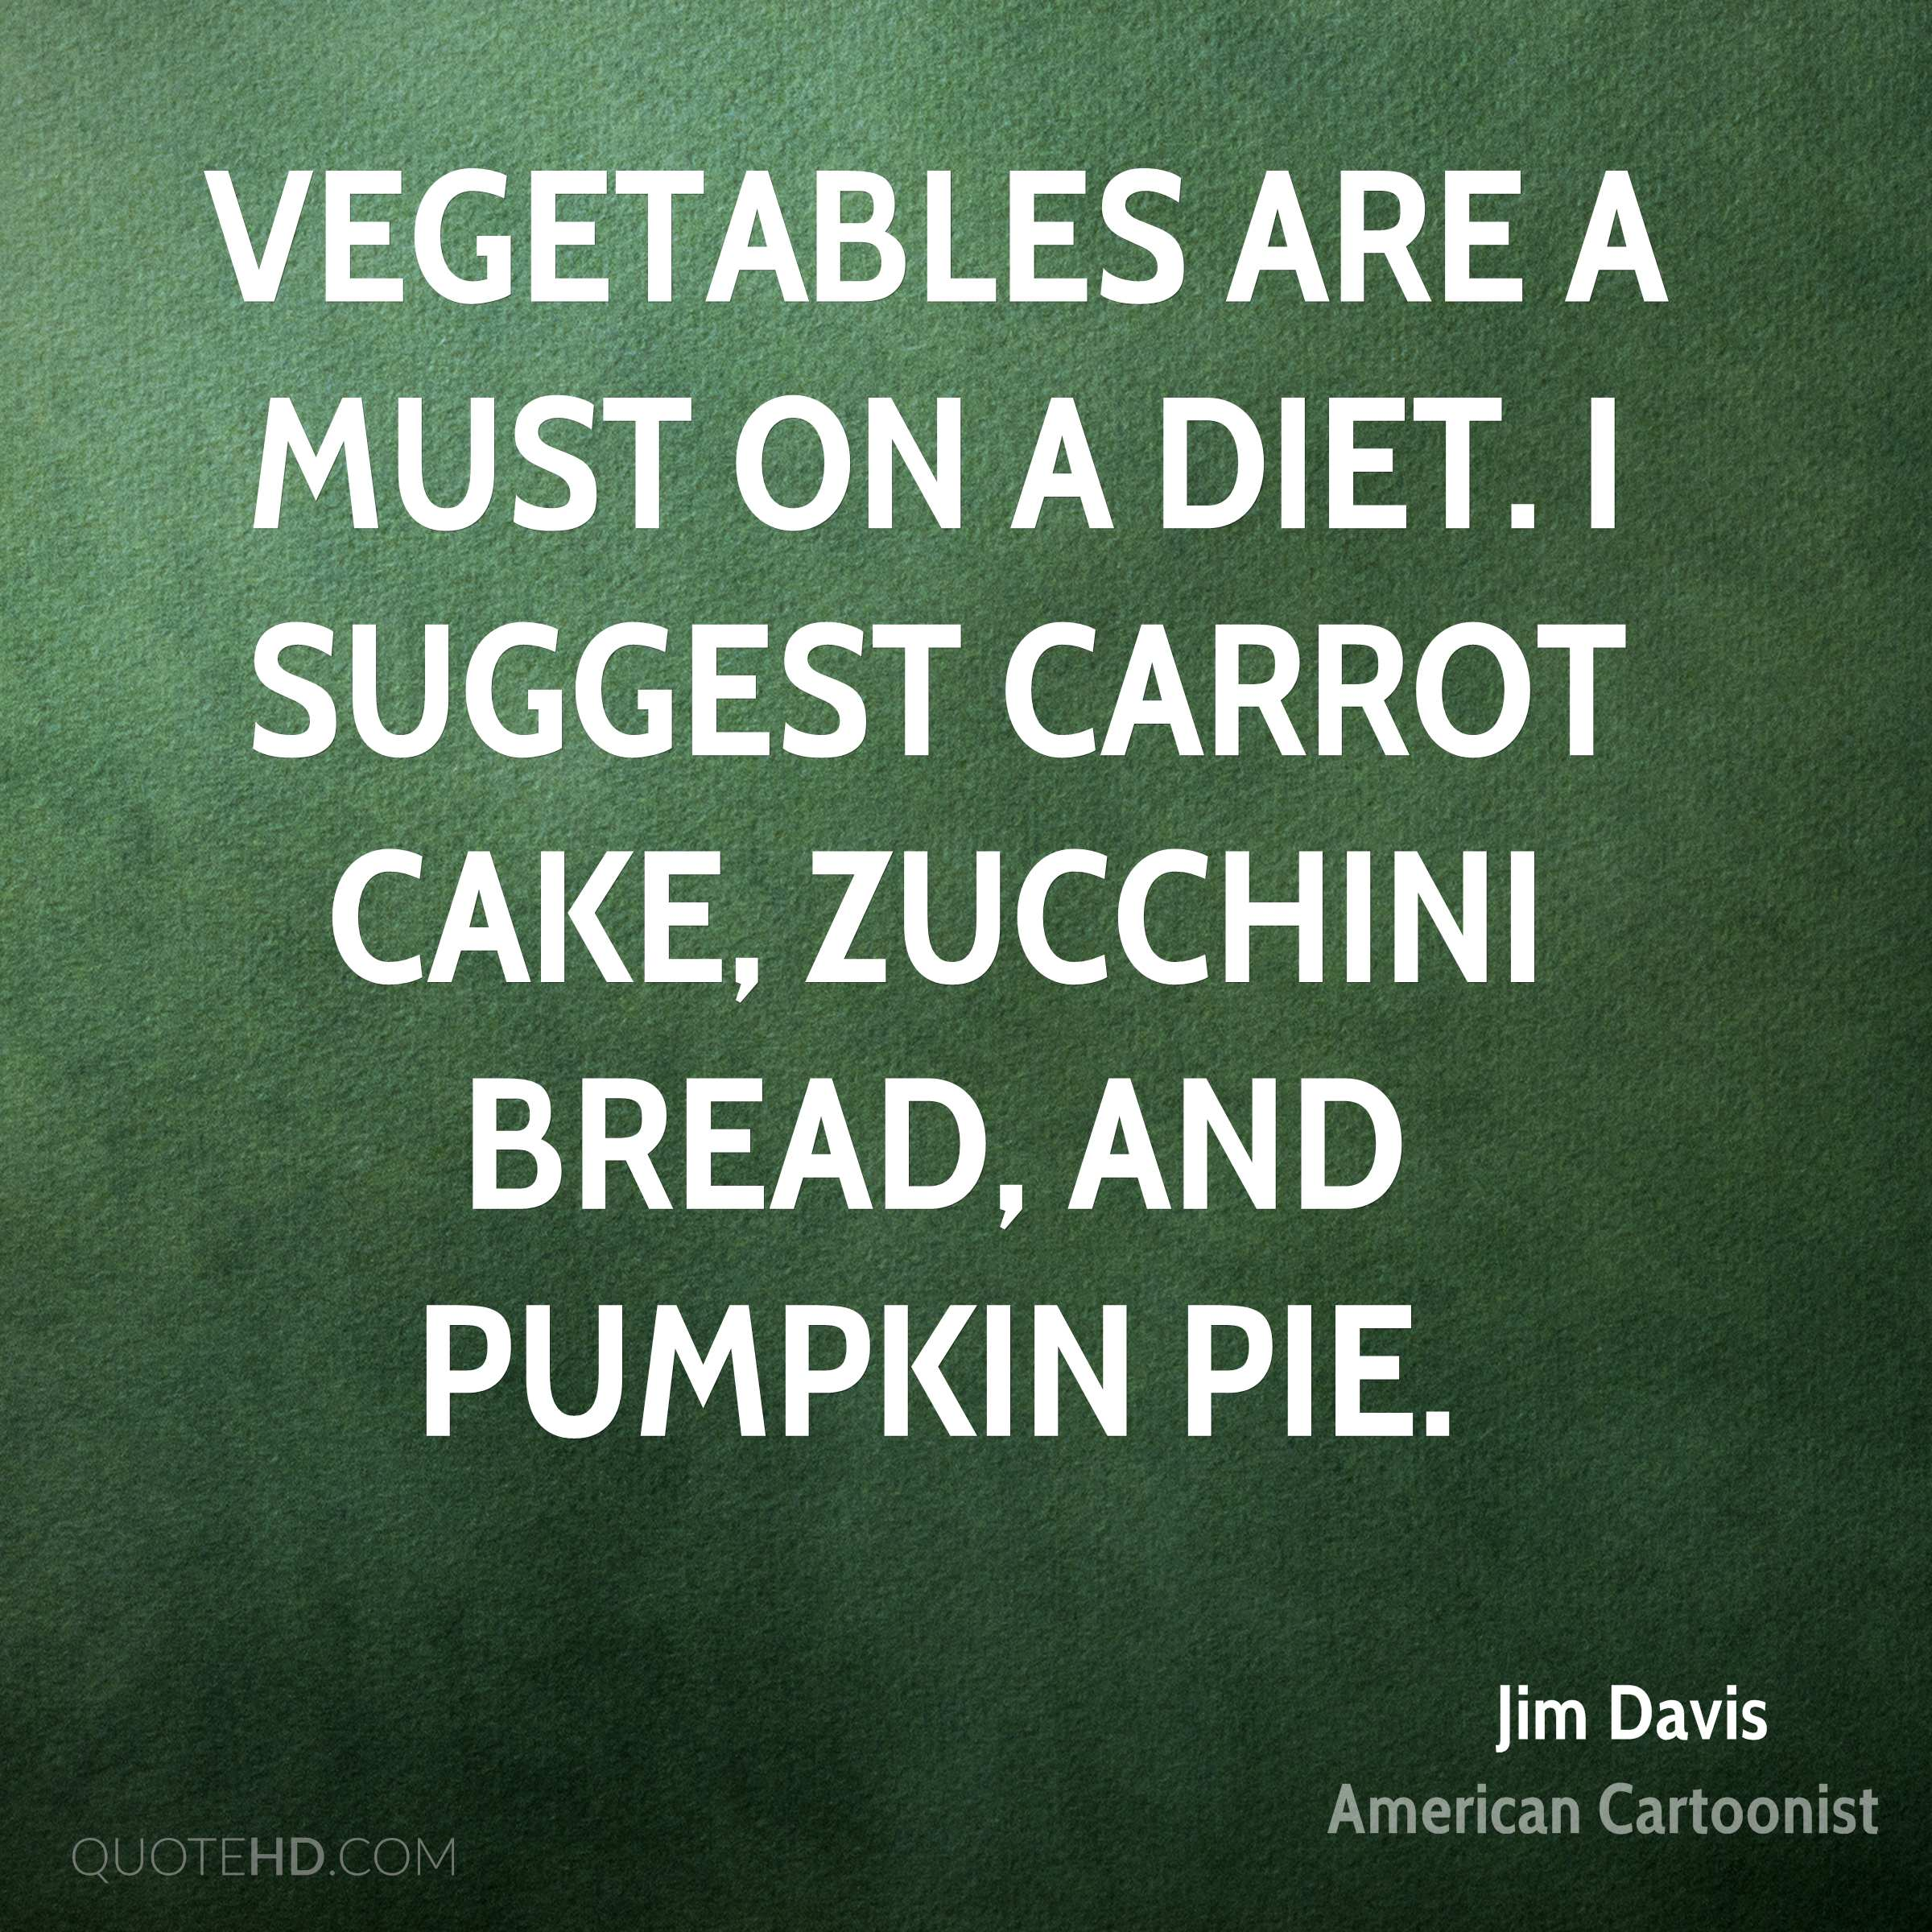 Vegetables are a must on a diet. I suggest carrot cake, zucchini bread, and pumpkin pie.